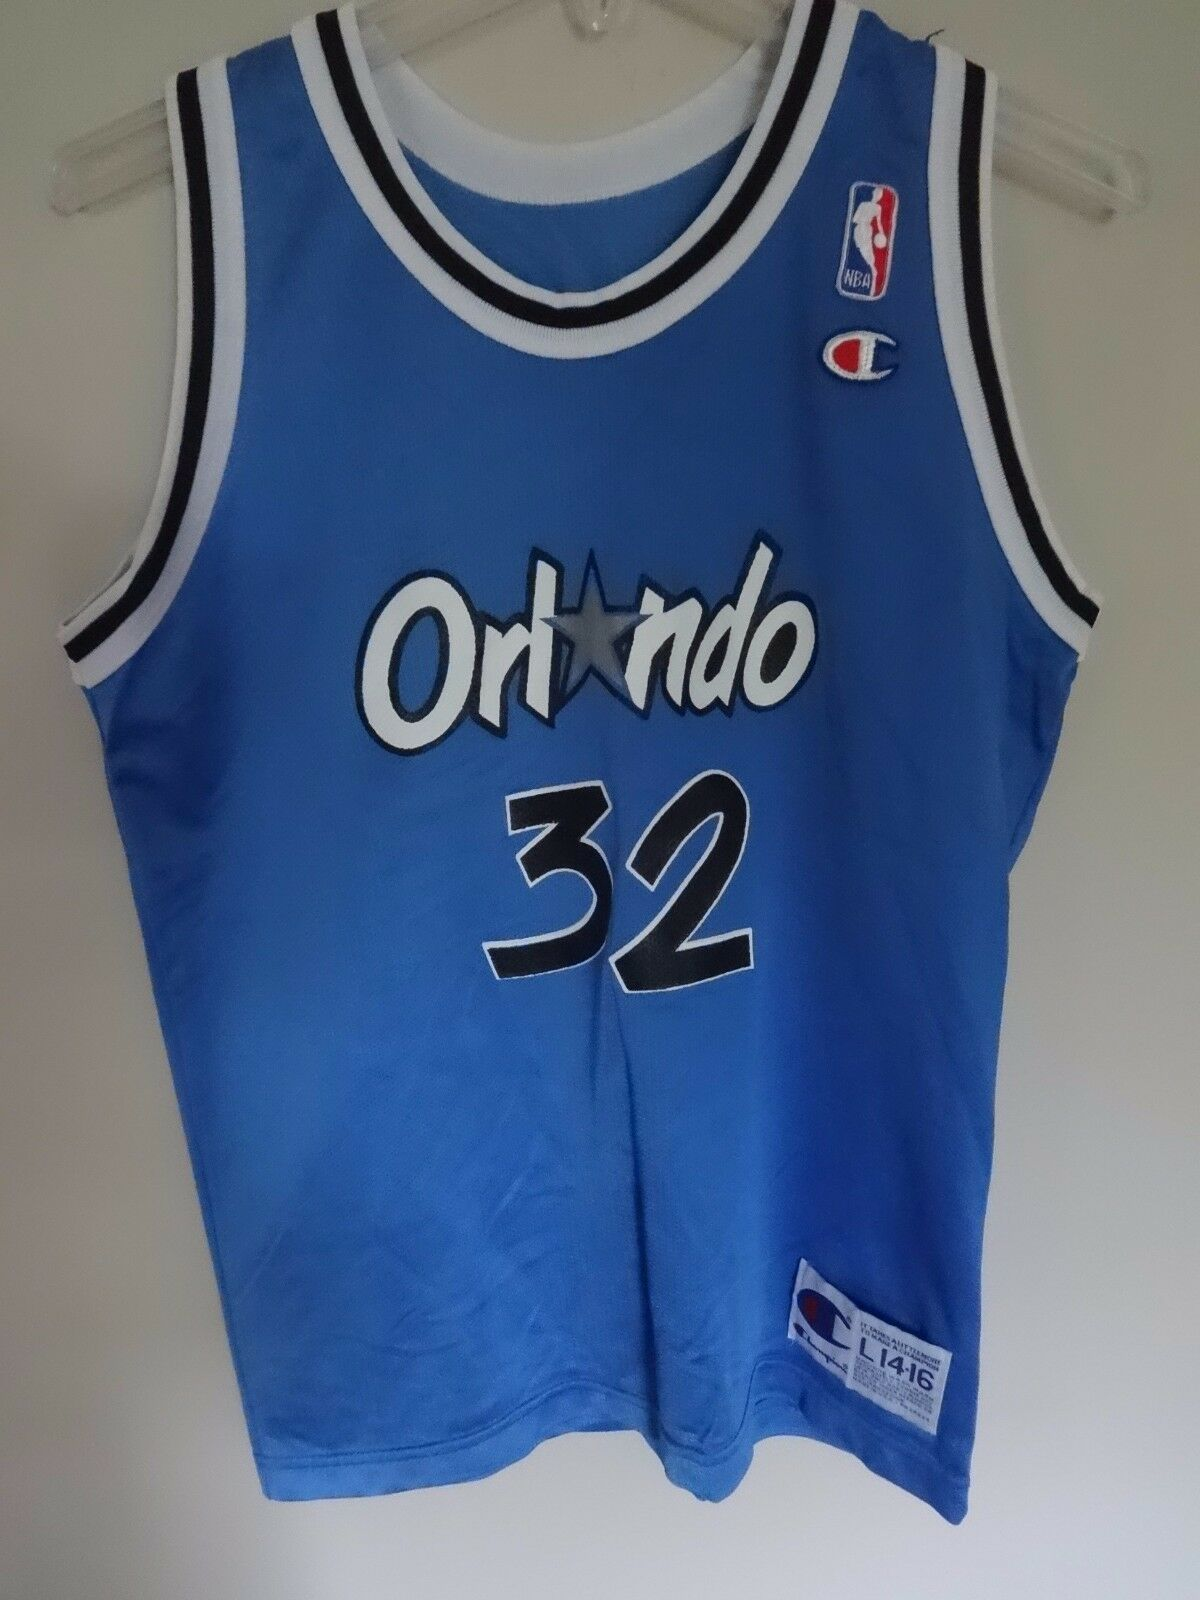 Primary image for Vintage 1990's Champion Orlando Magic Shaquille O'Neal # 32 Jersey Youth L 14/16